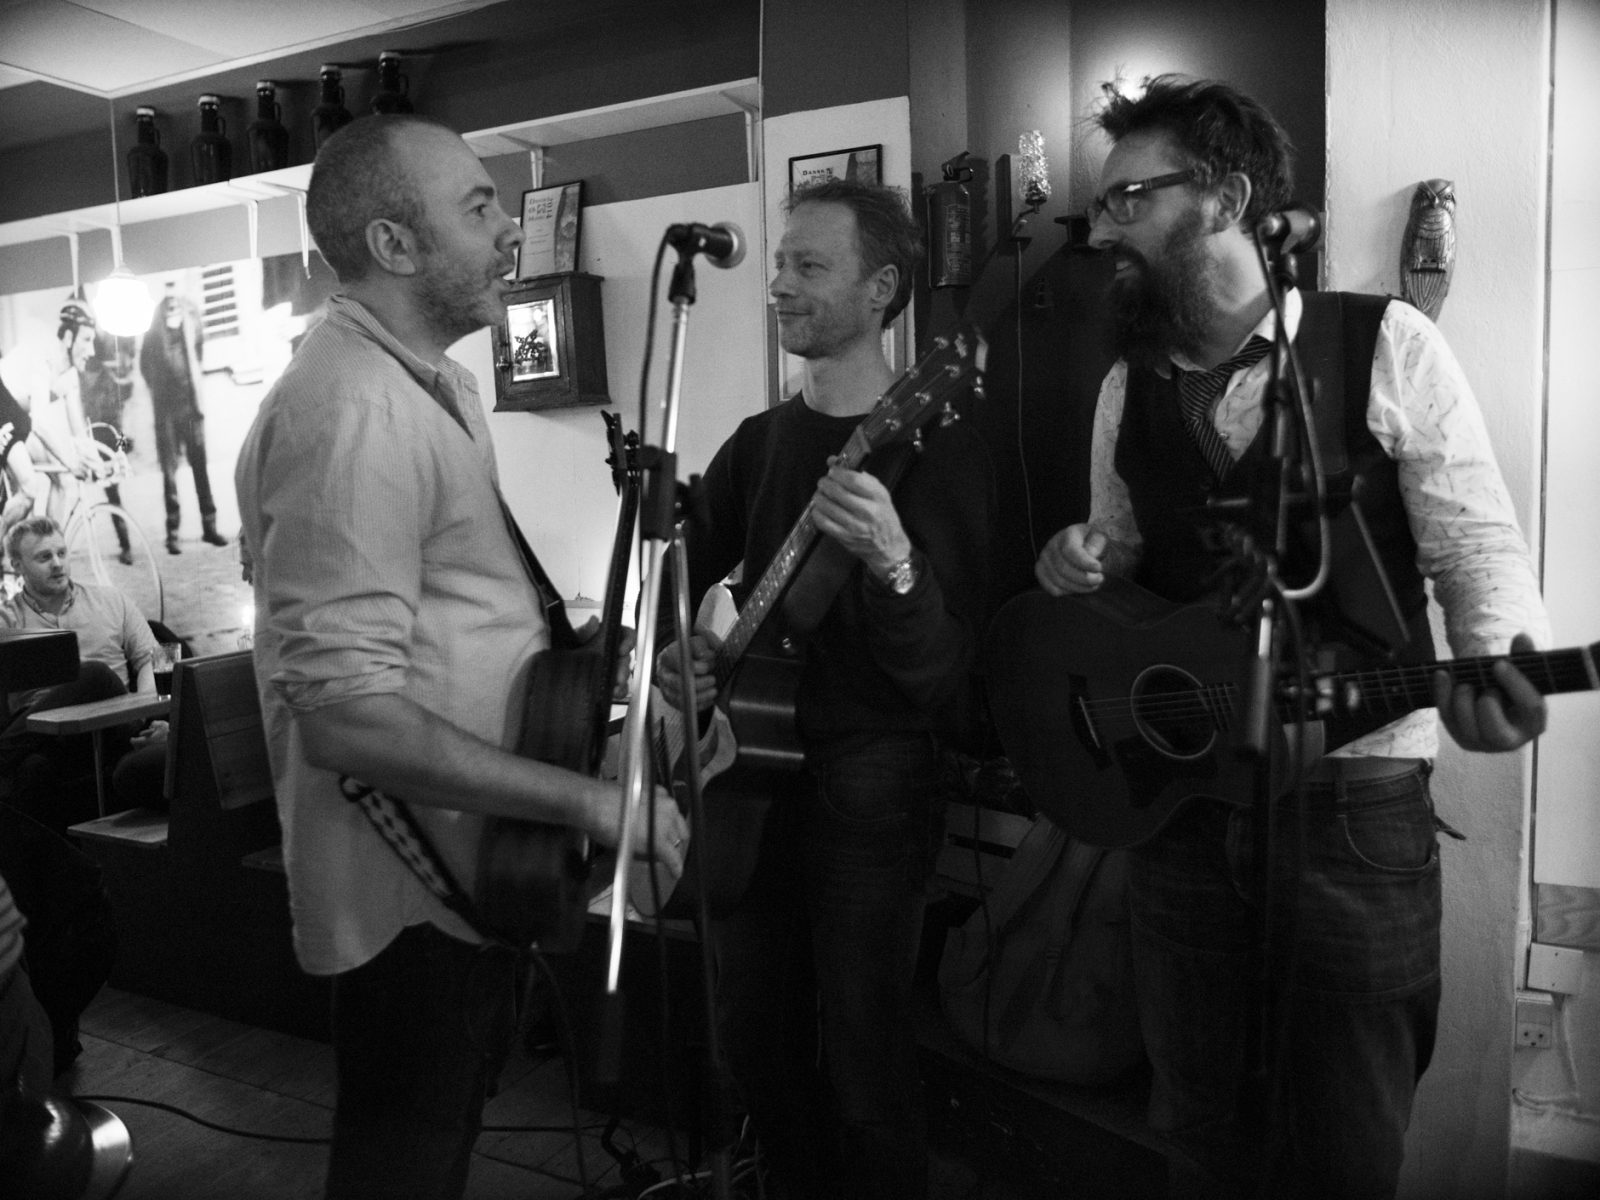 Music video production: Peter, Olav and Michael from Hund i Snor chatting between songs